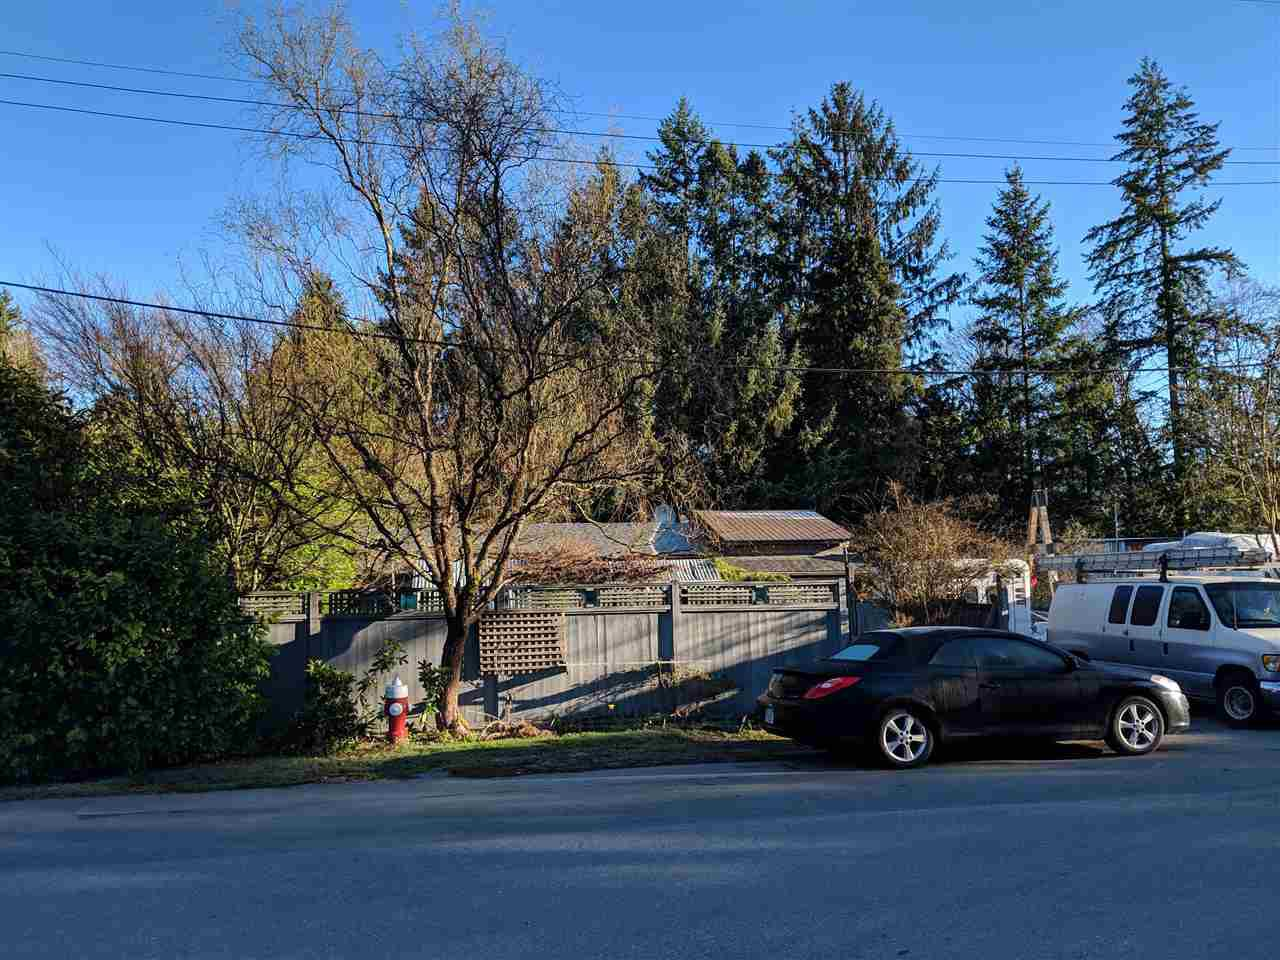 Main Photo: 22175 123 Avenue in Maple Ridge: West Central House for sale : MLS®# R2352749